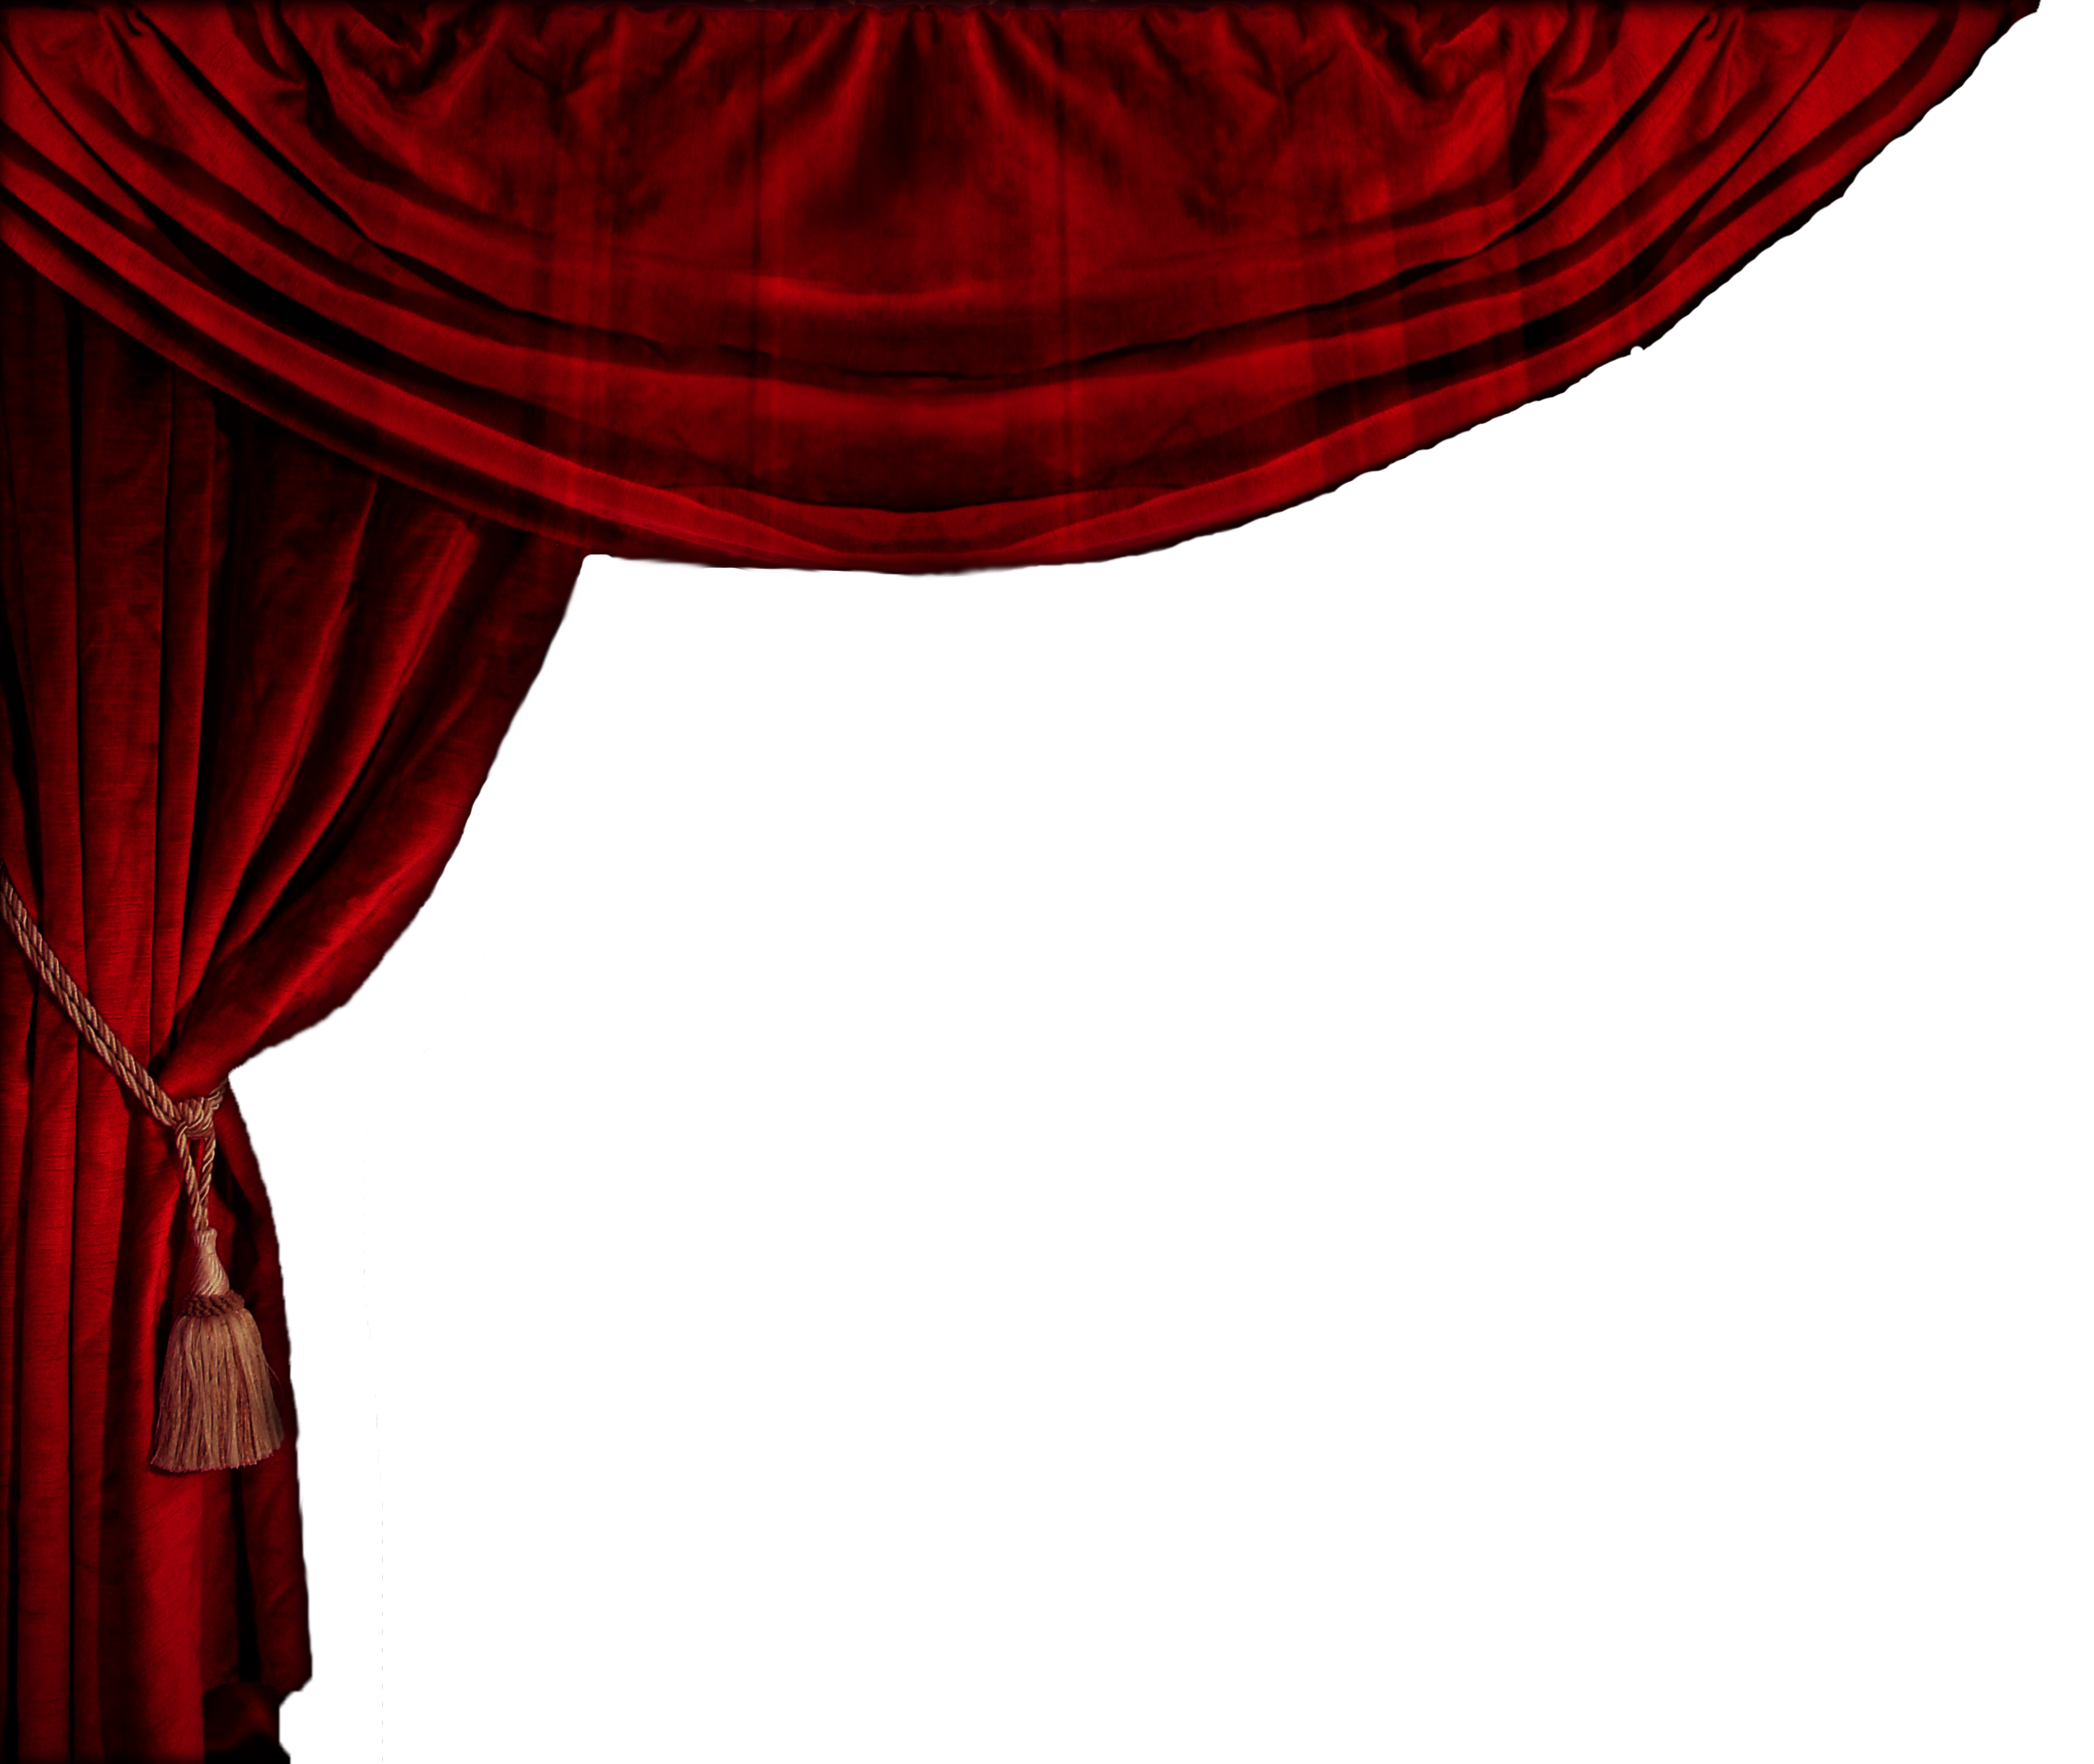 Stage Curtain Png | www.imgkid.com - The Image Kid Has It!